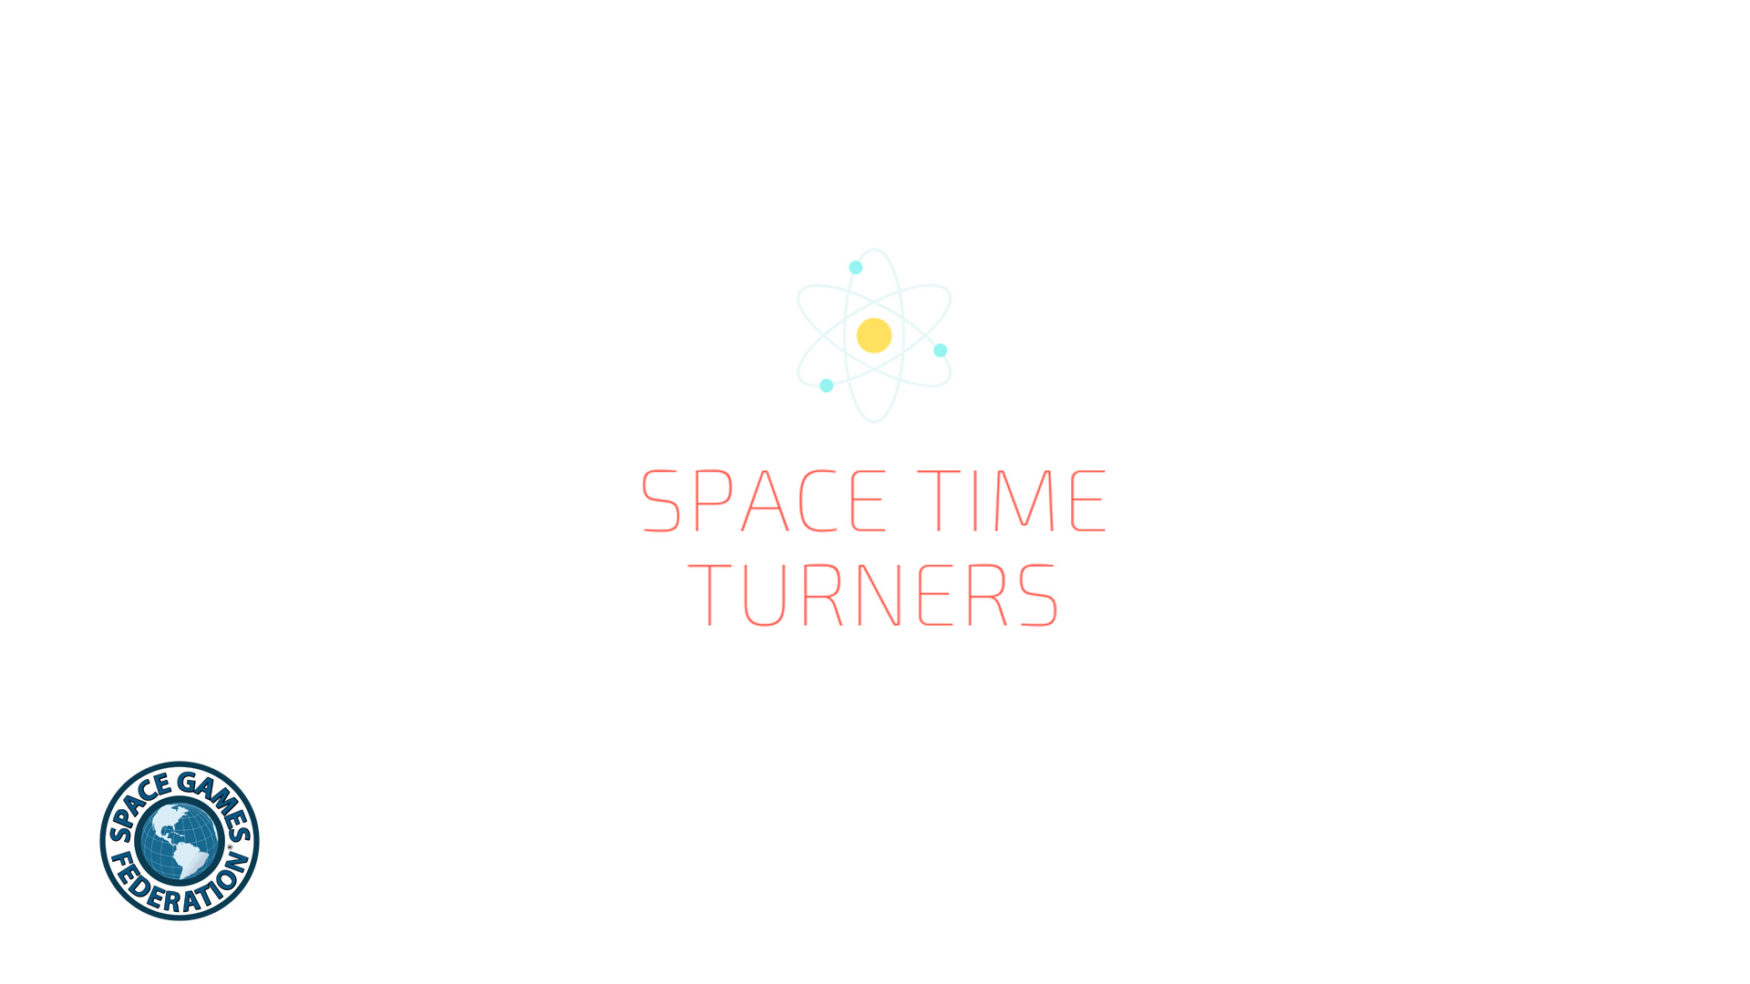 15). Space Time Turners